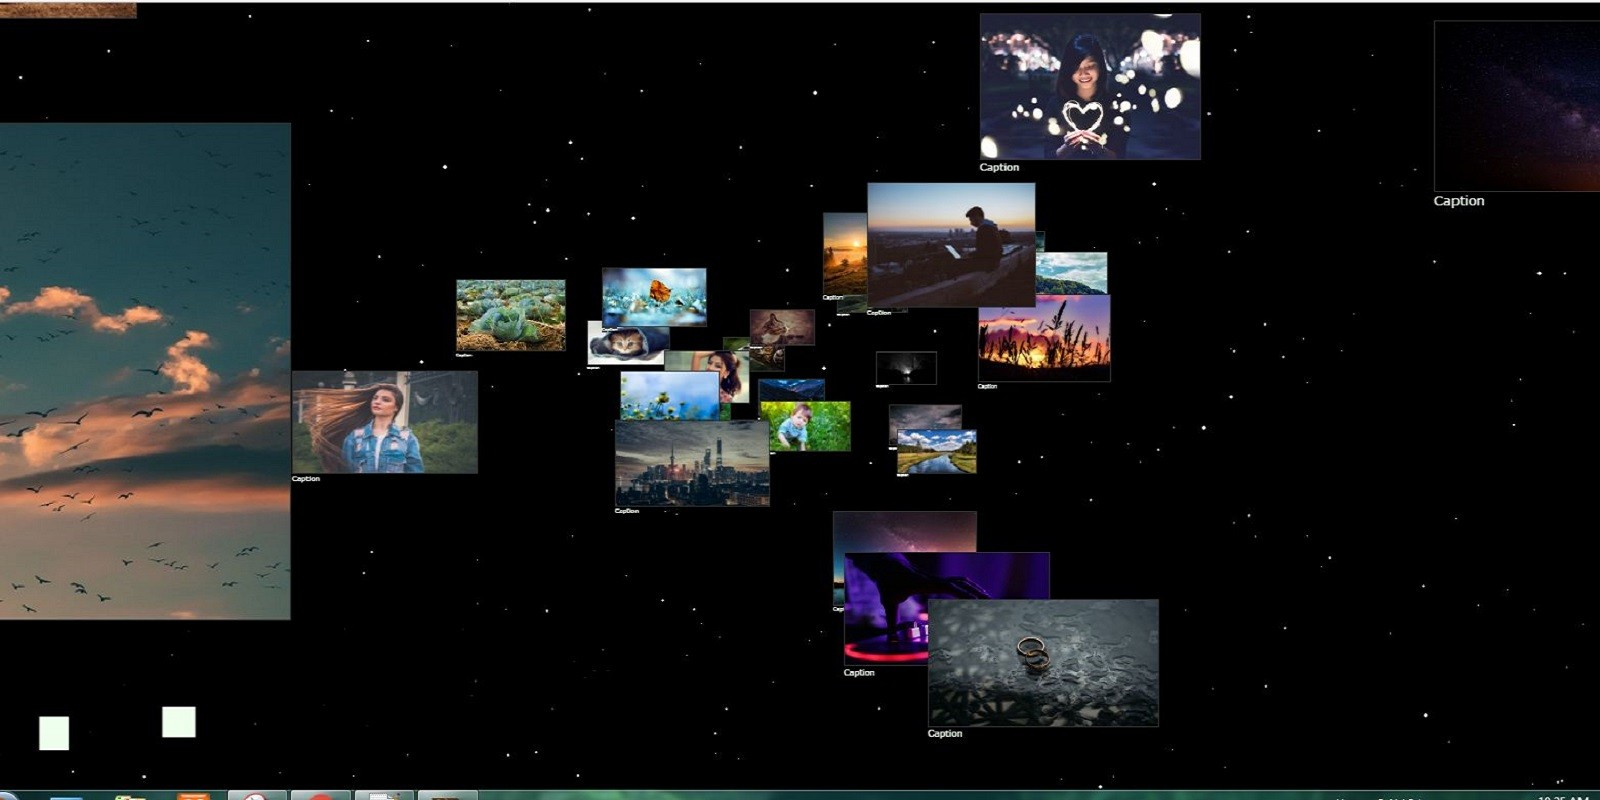 3D Photo Gallery on Space with Moving Stars